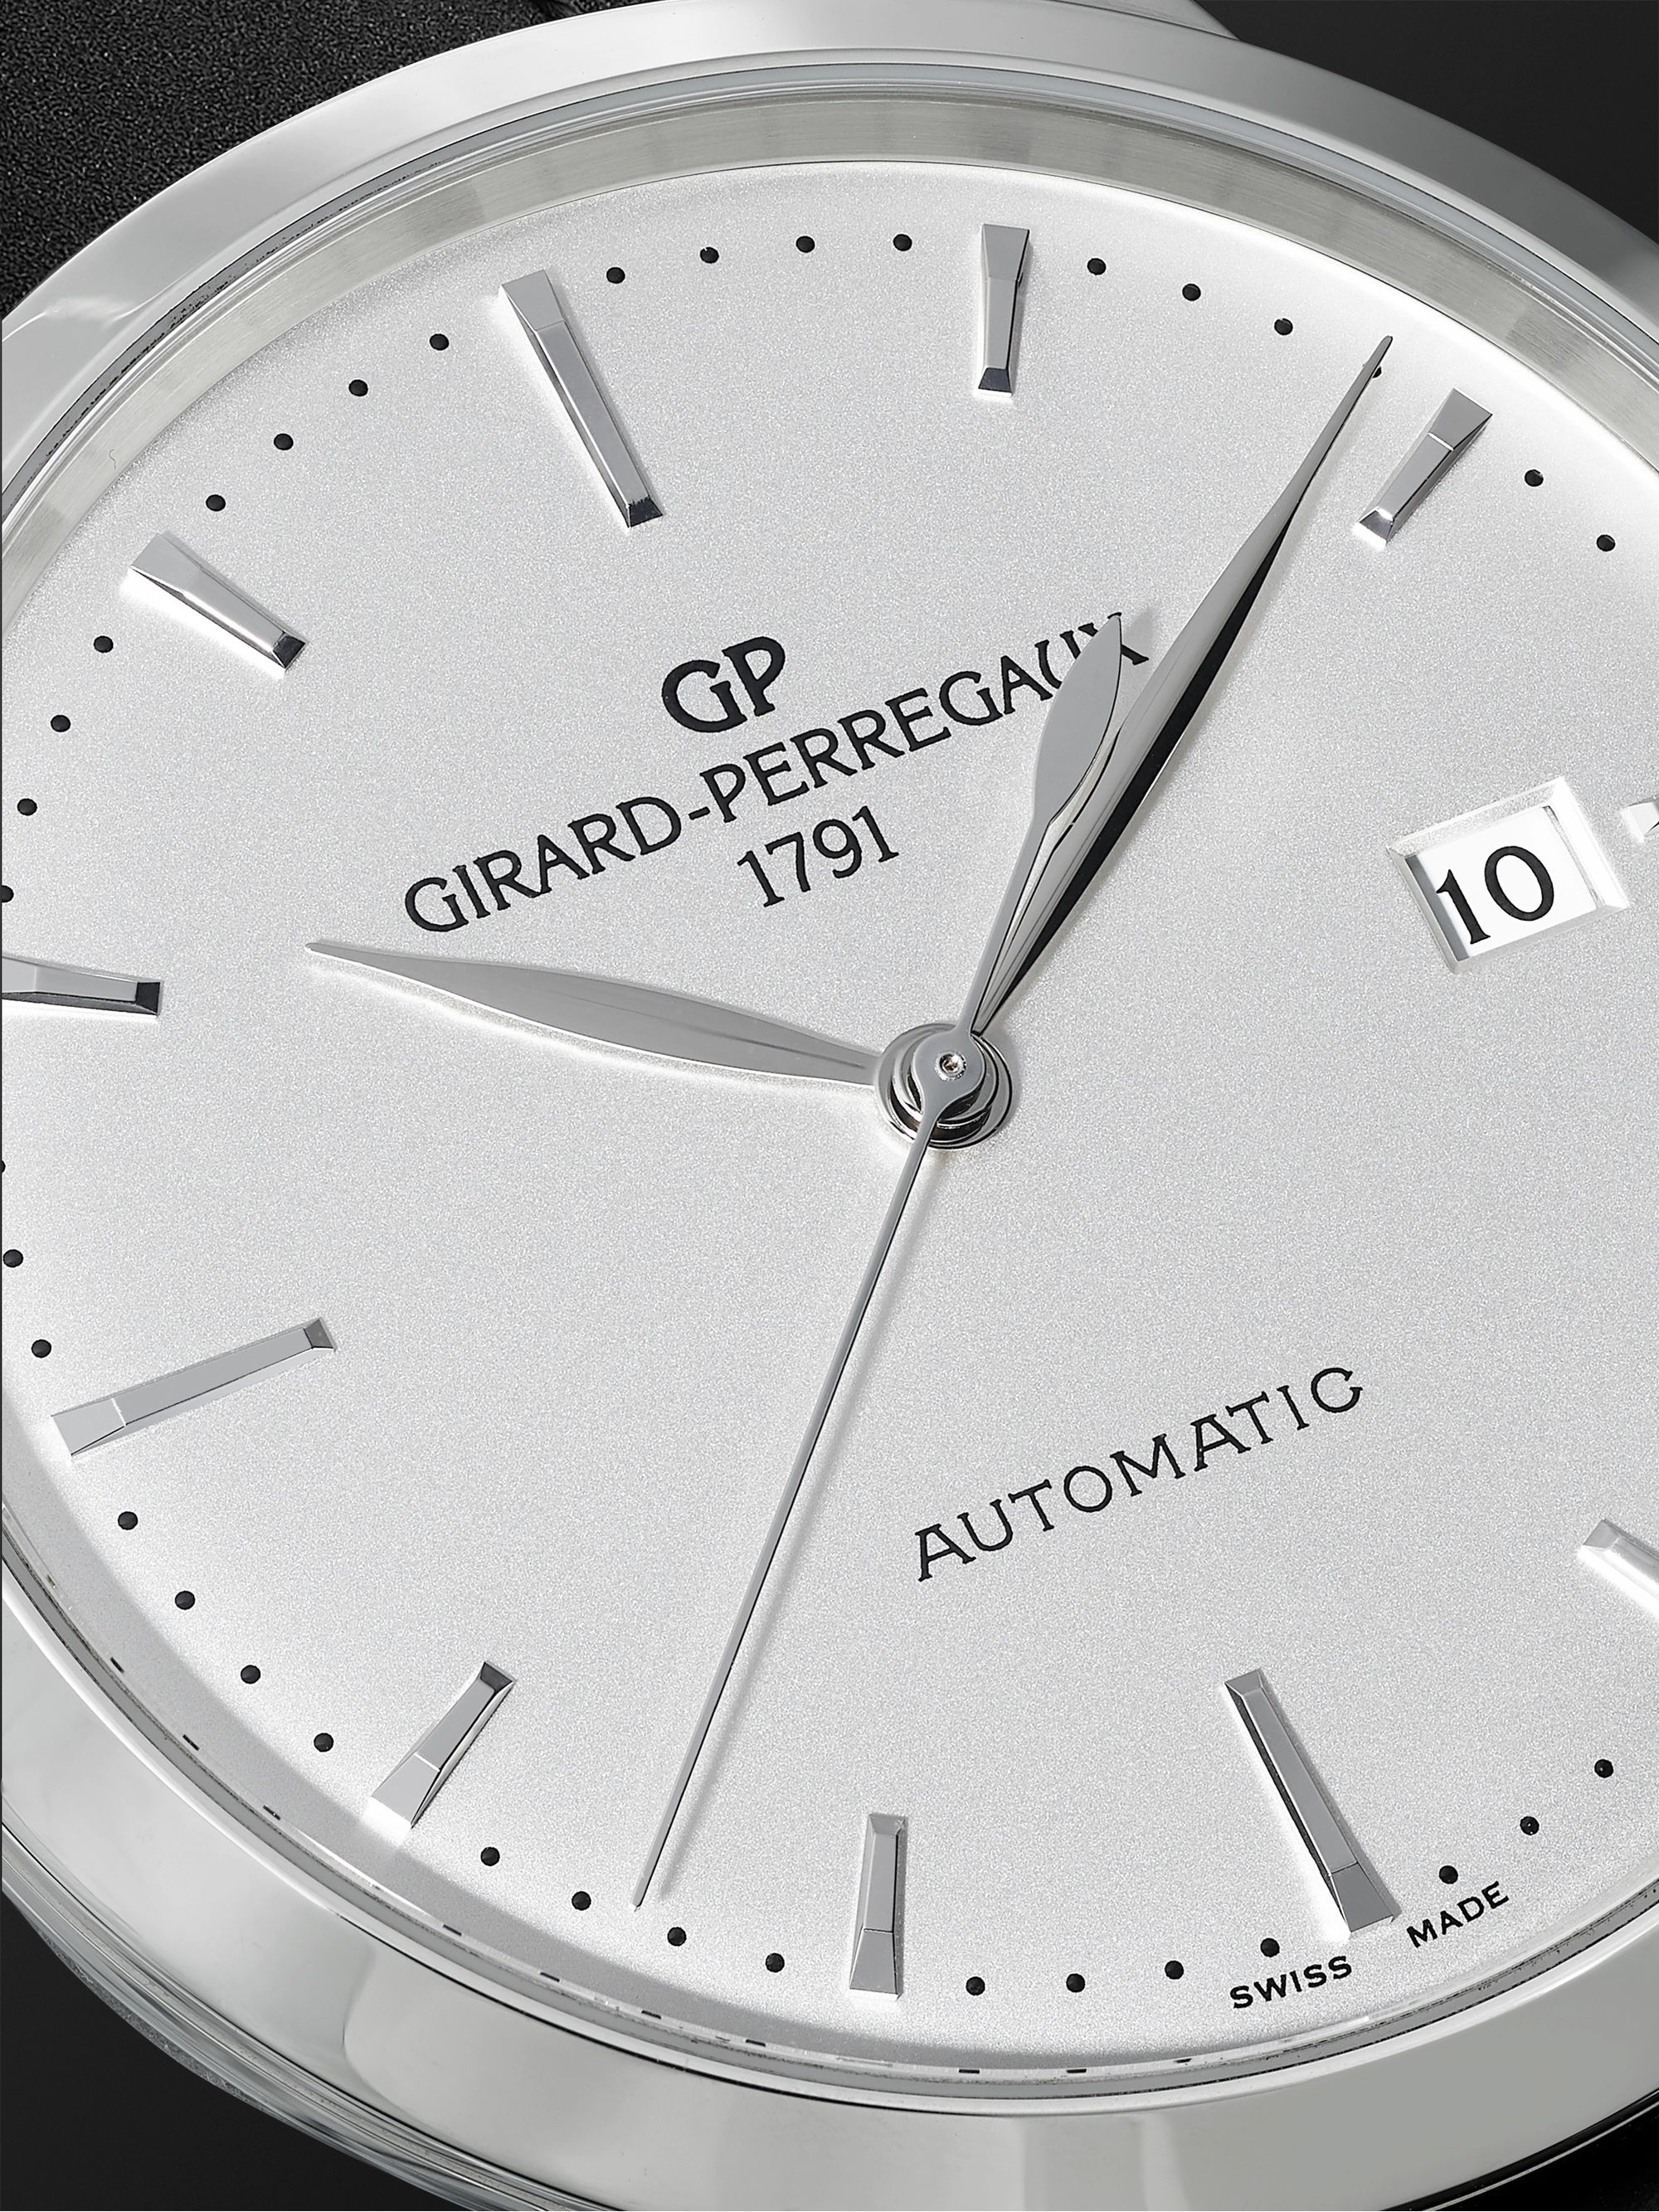 GIRARD-PERREGAUX 1966 Automatic 40mm Stainless Steel and Croc-Effect Leather Watch, Ref. No. 49555-11-131-BB60